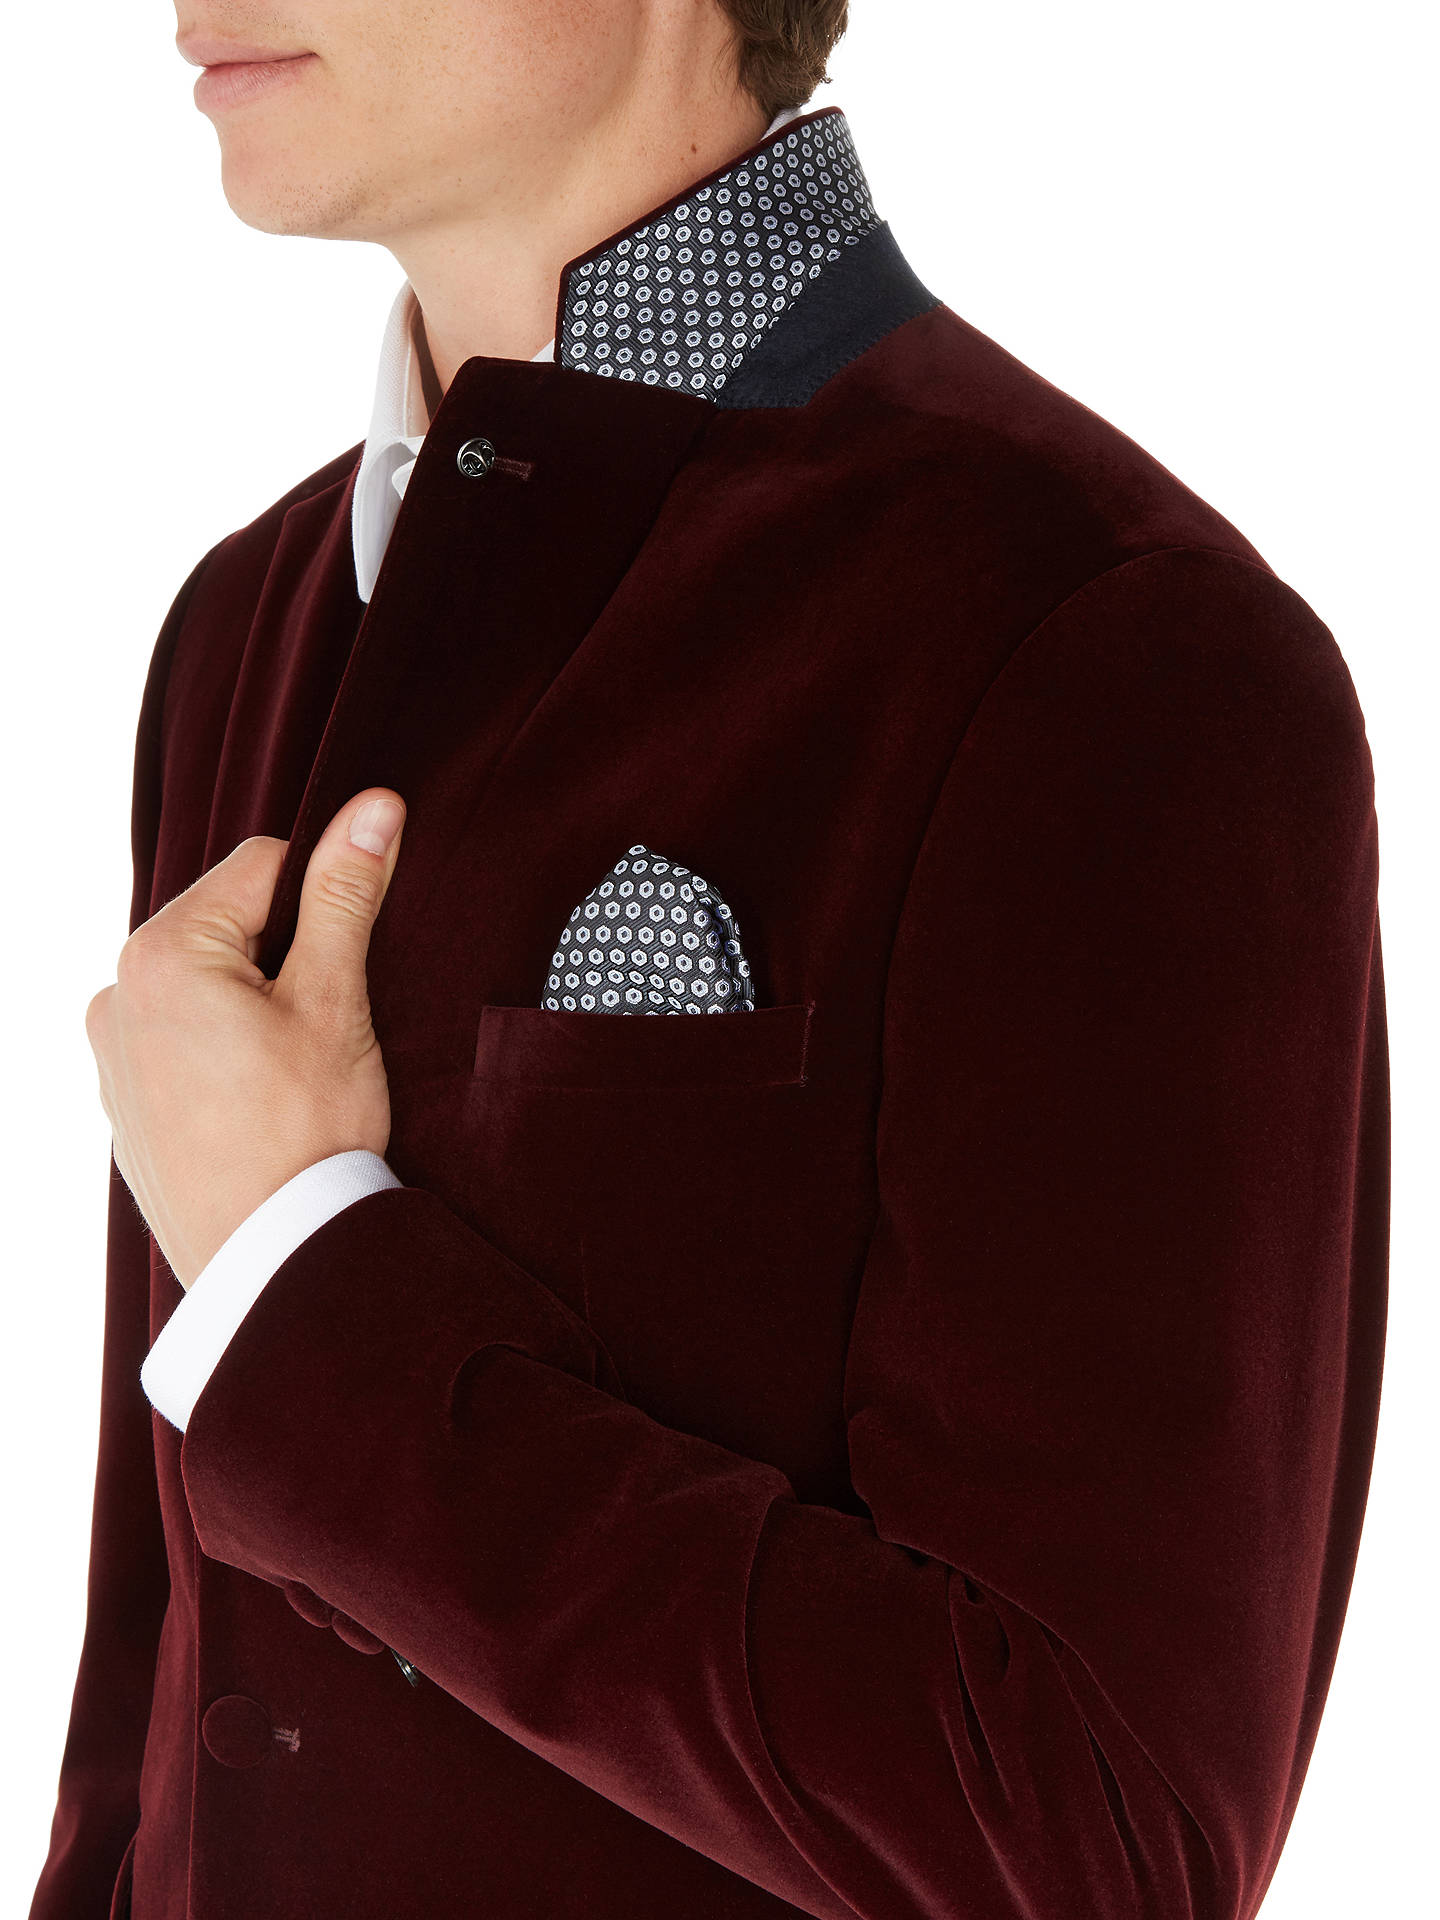 BuyTed Baker Lunonj Velvet Tailored Blazer, Dark Red, 44R Online at johnlewis.com